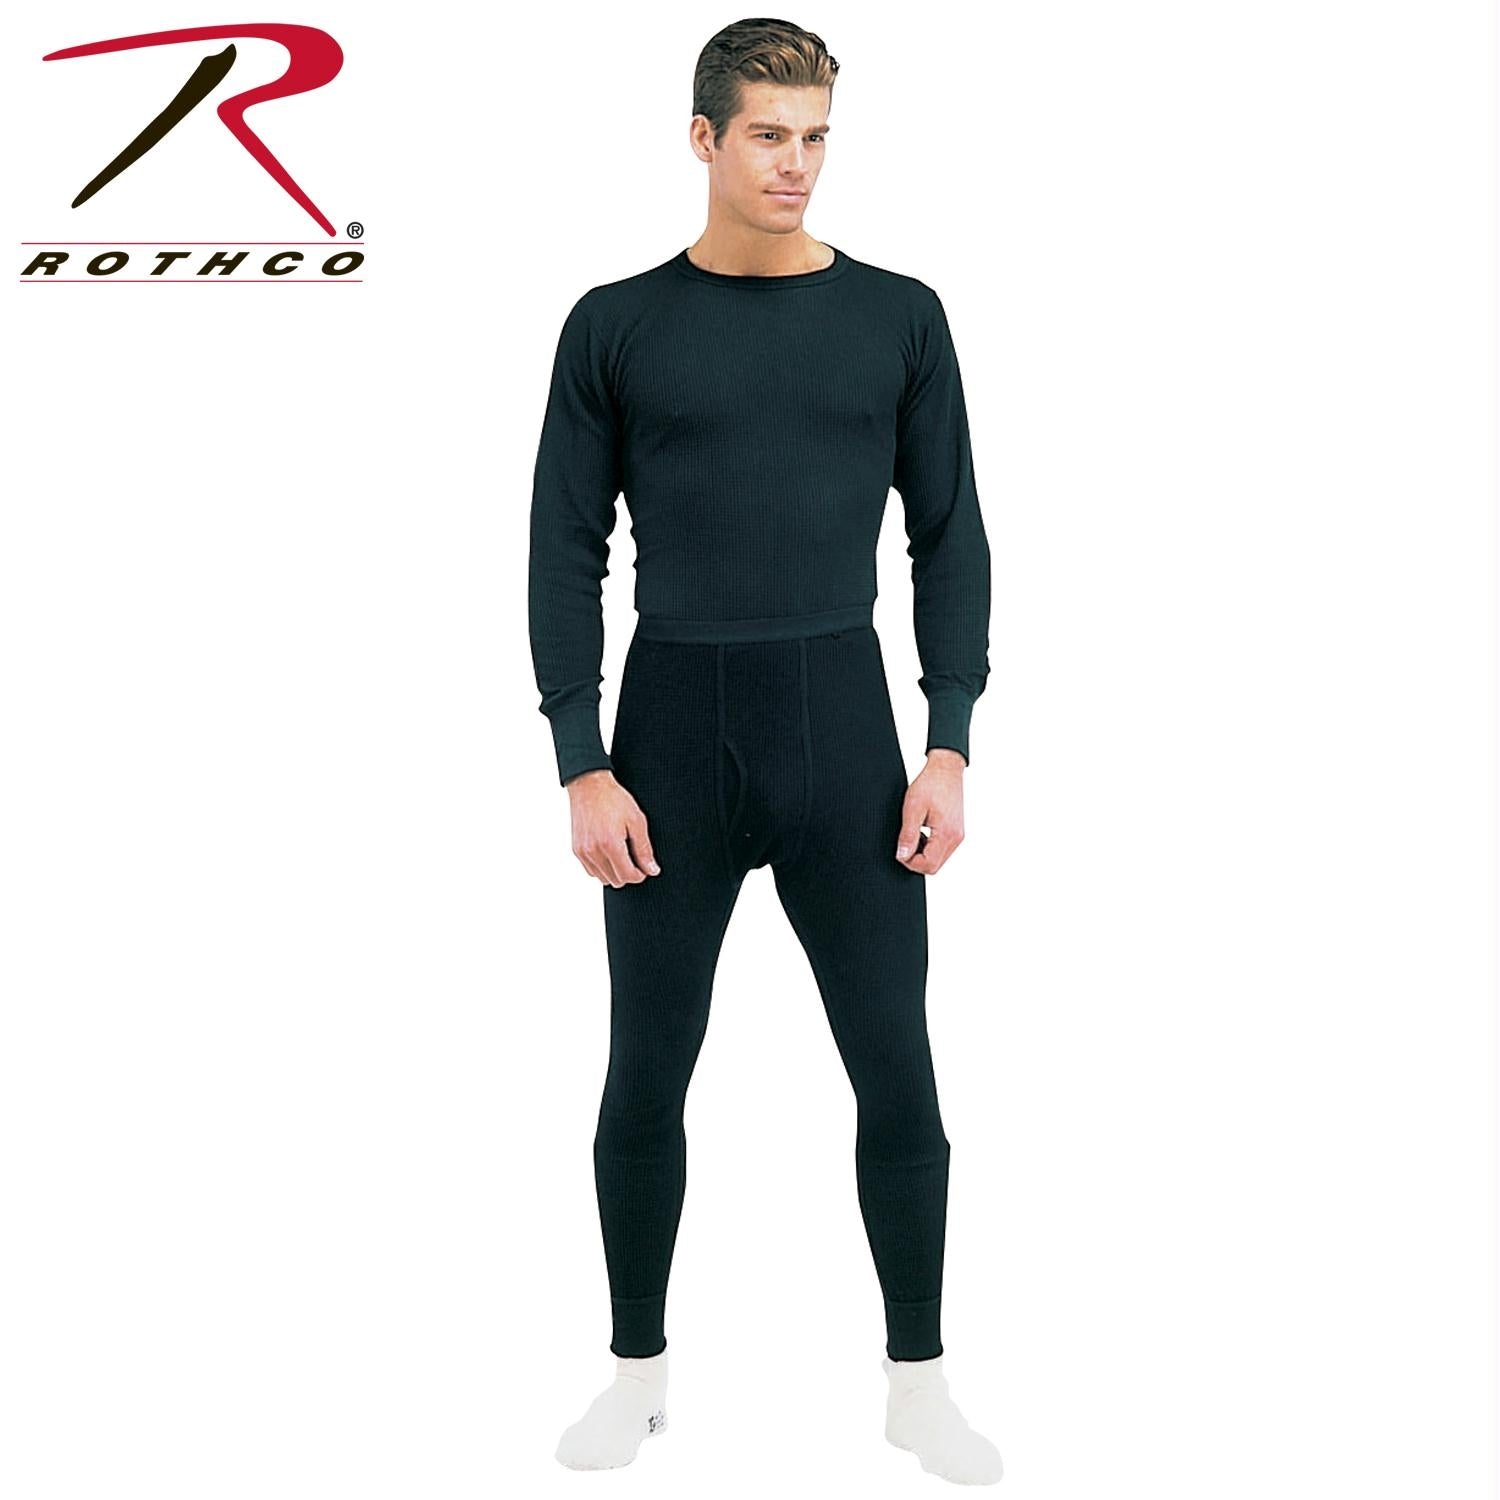 Rothco Thermal Knit Underwear Bottoms - Black / XL